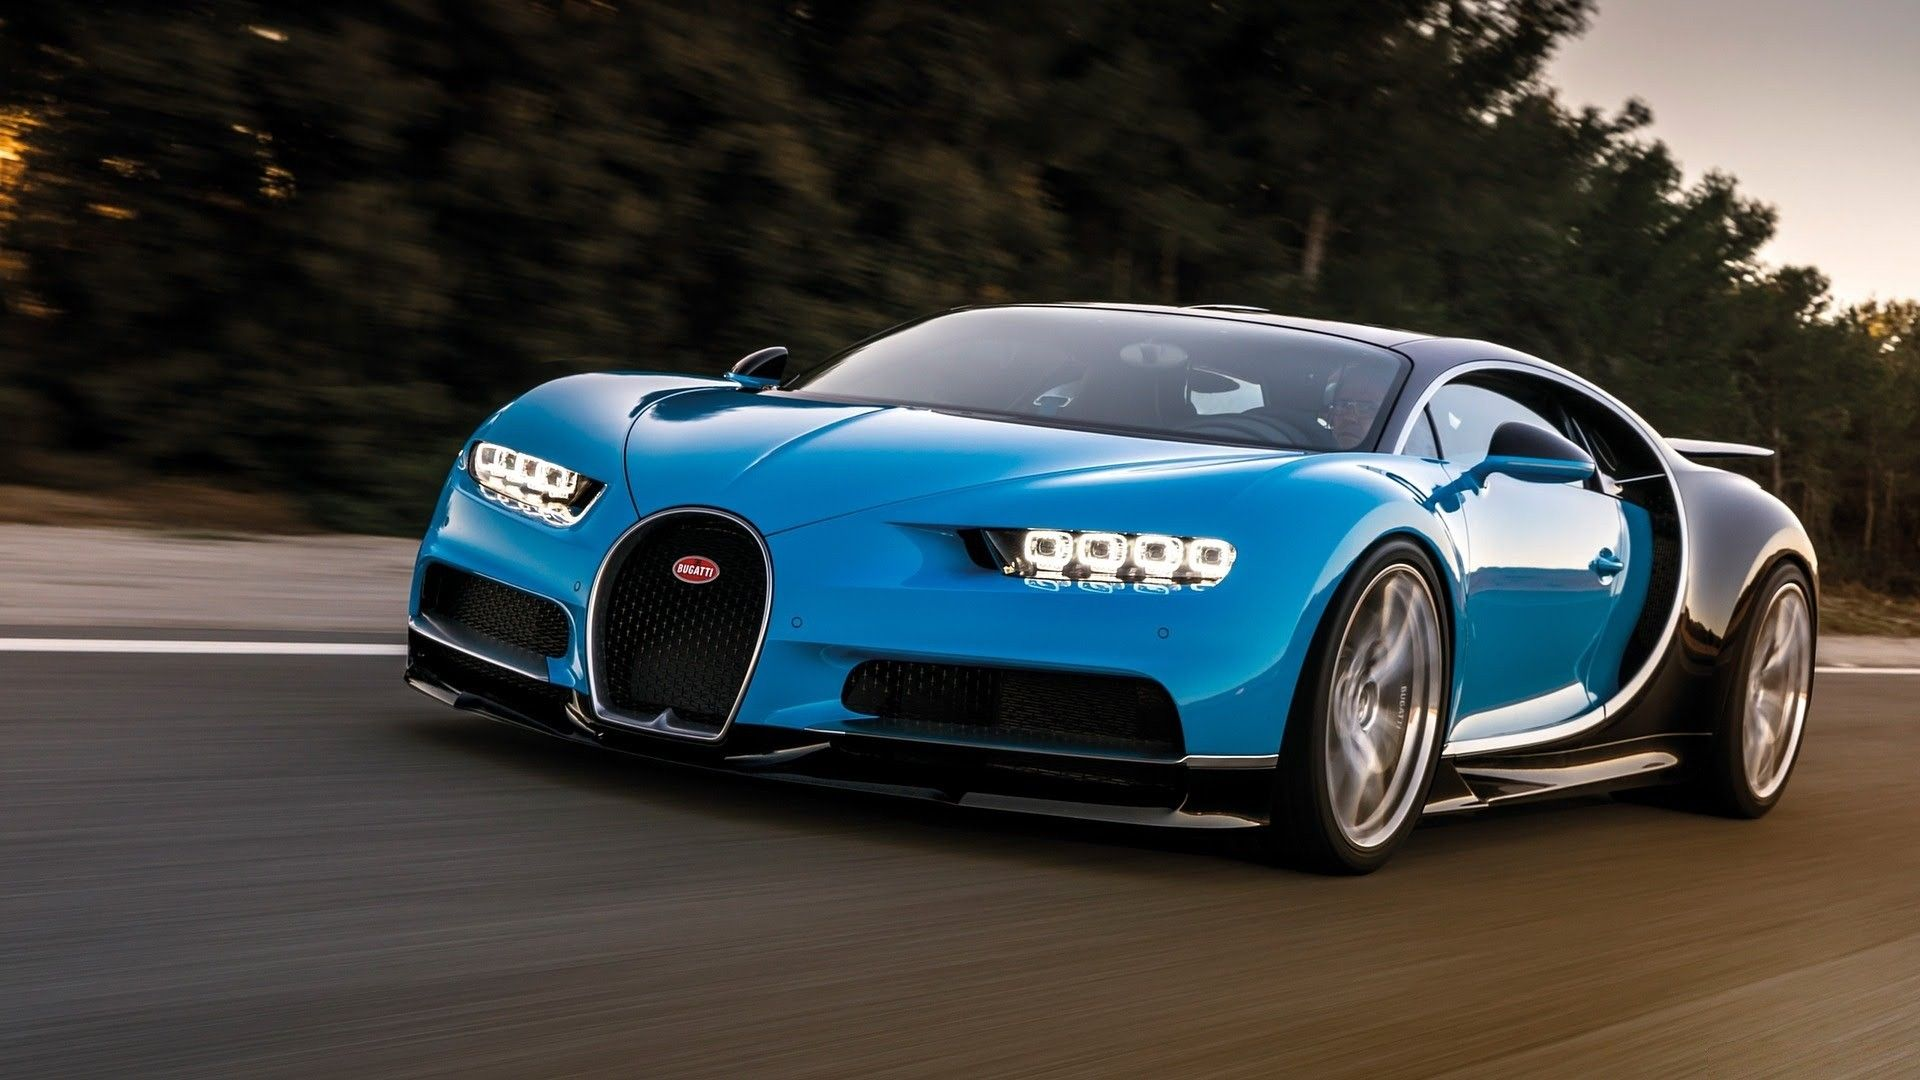 Cars Desktop Hd Wallpapers Hd Wallpapers 1920 1200 Hd Wallpaper Car 70 Wallpapers Adorable Wallpapers Bugatti Cars Bugatti Chiron New Bugatti Chiron